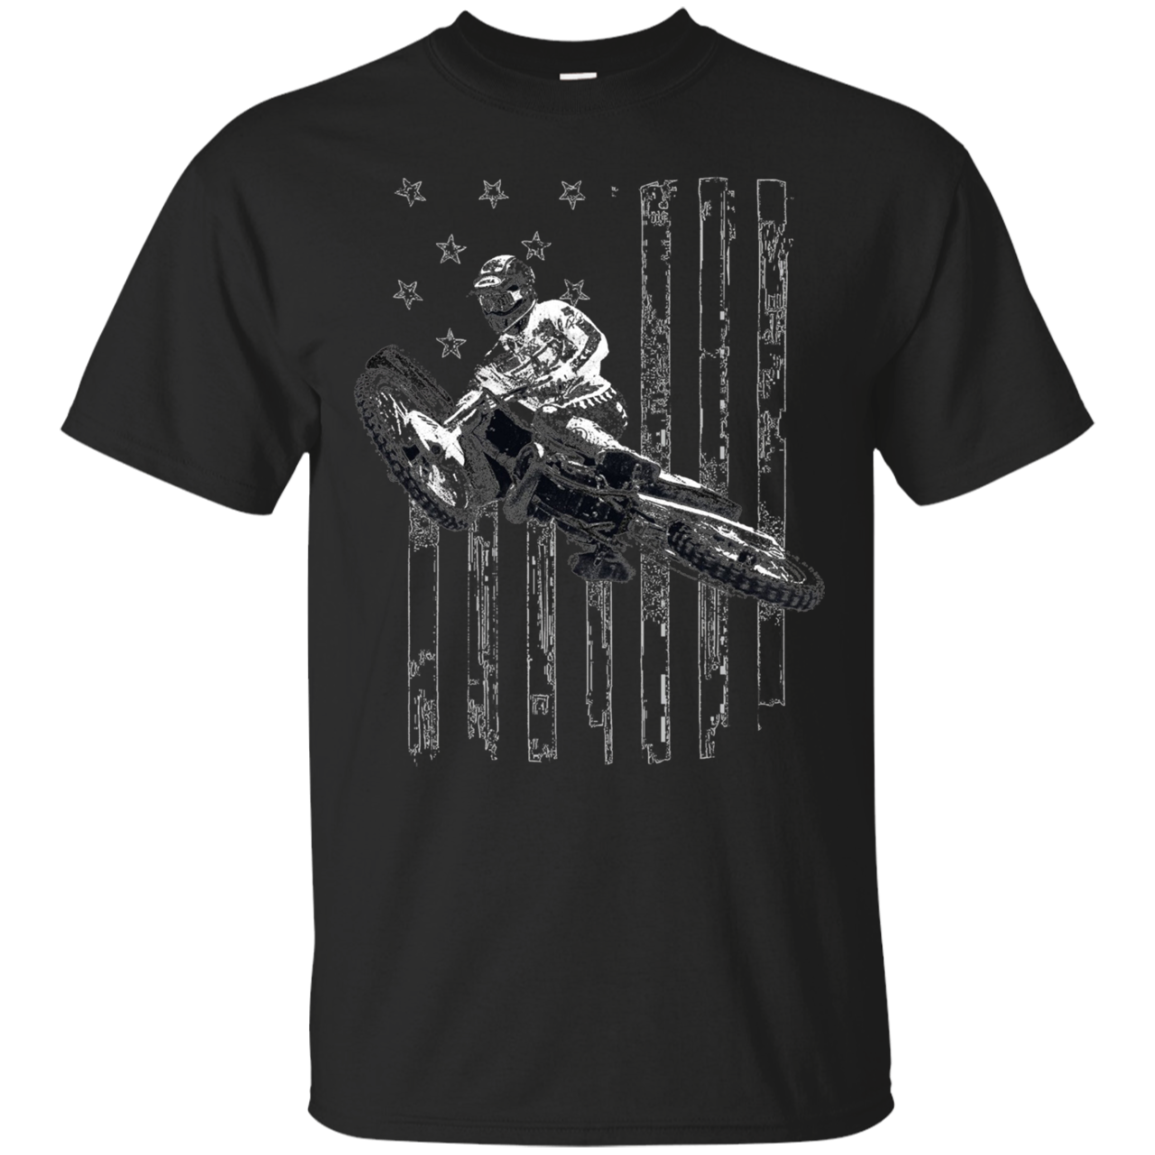 American Flag Motocross Dirt Bike Graphic T-shirt